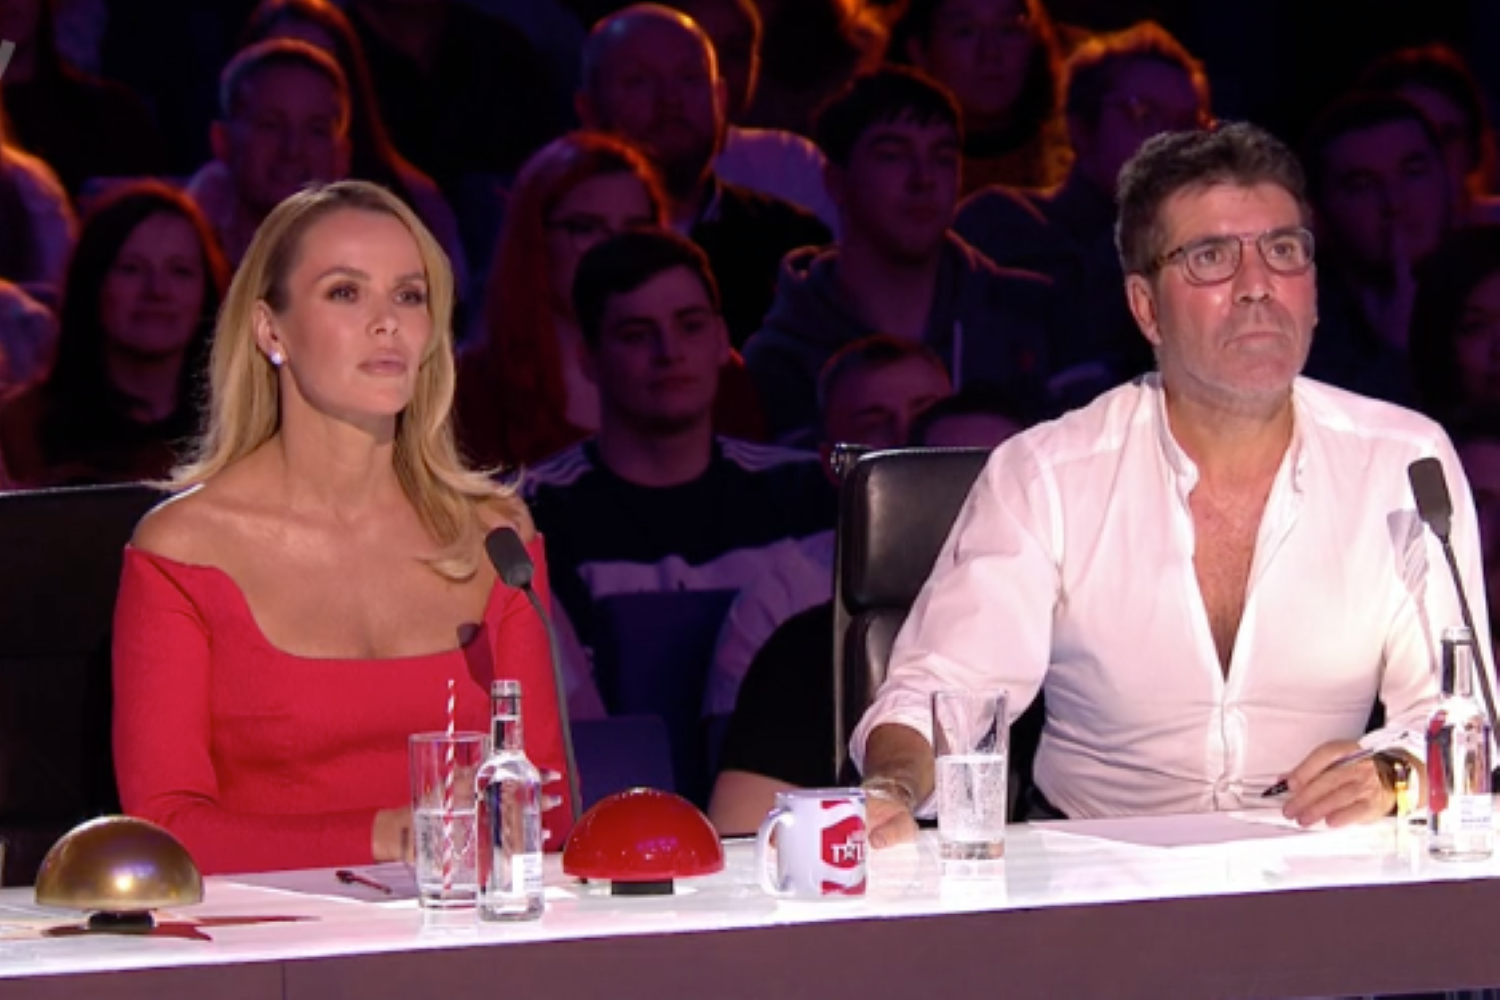 Britain's Got Talent viewers hit out at 'do not try this at home' warning